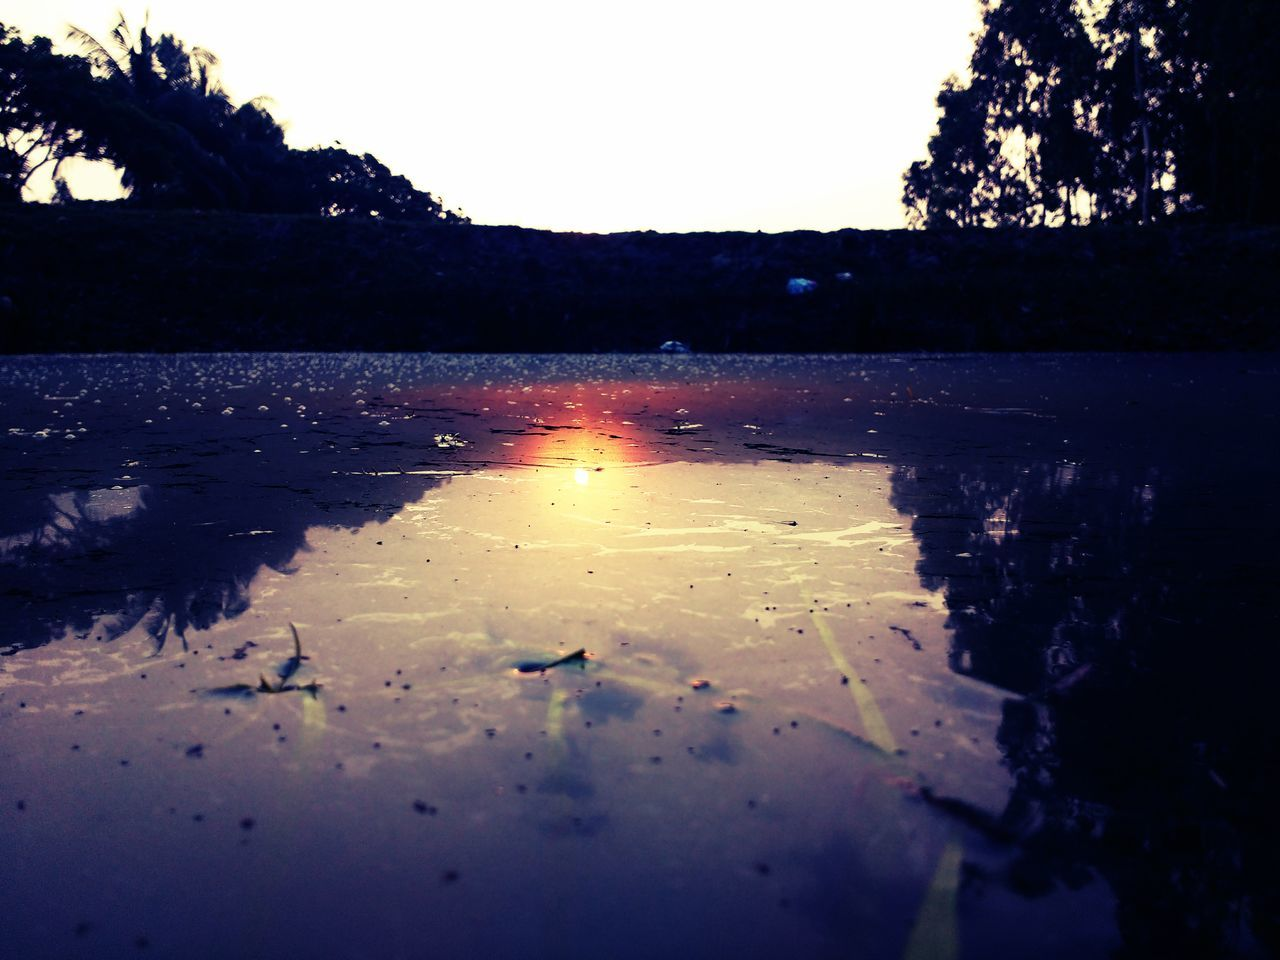 reflection, water, tree, no people, tranquility, nature, tranquil scene, silhouette, scenics, lake, outdoors, sunset, puddle, beauty in nature, sky, day, close-up